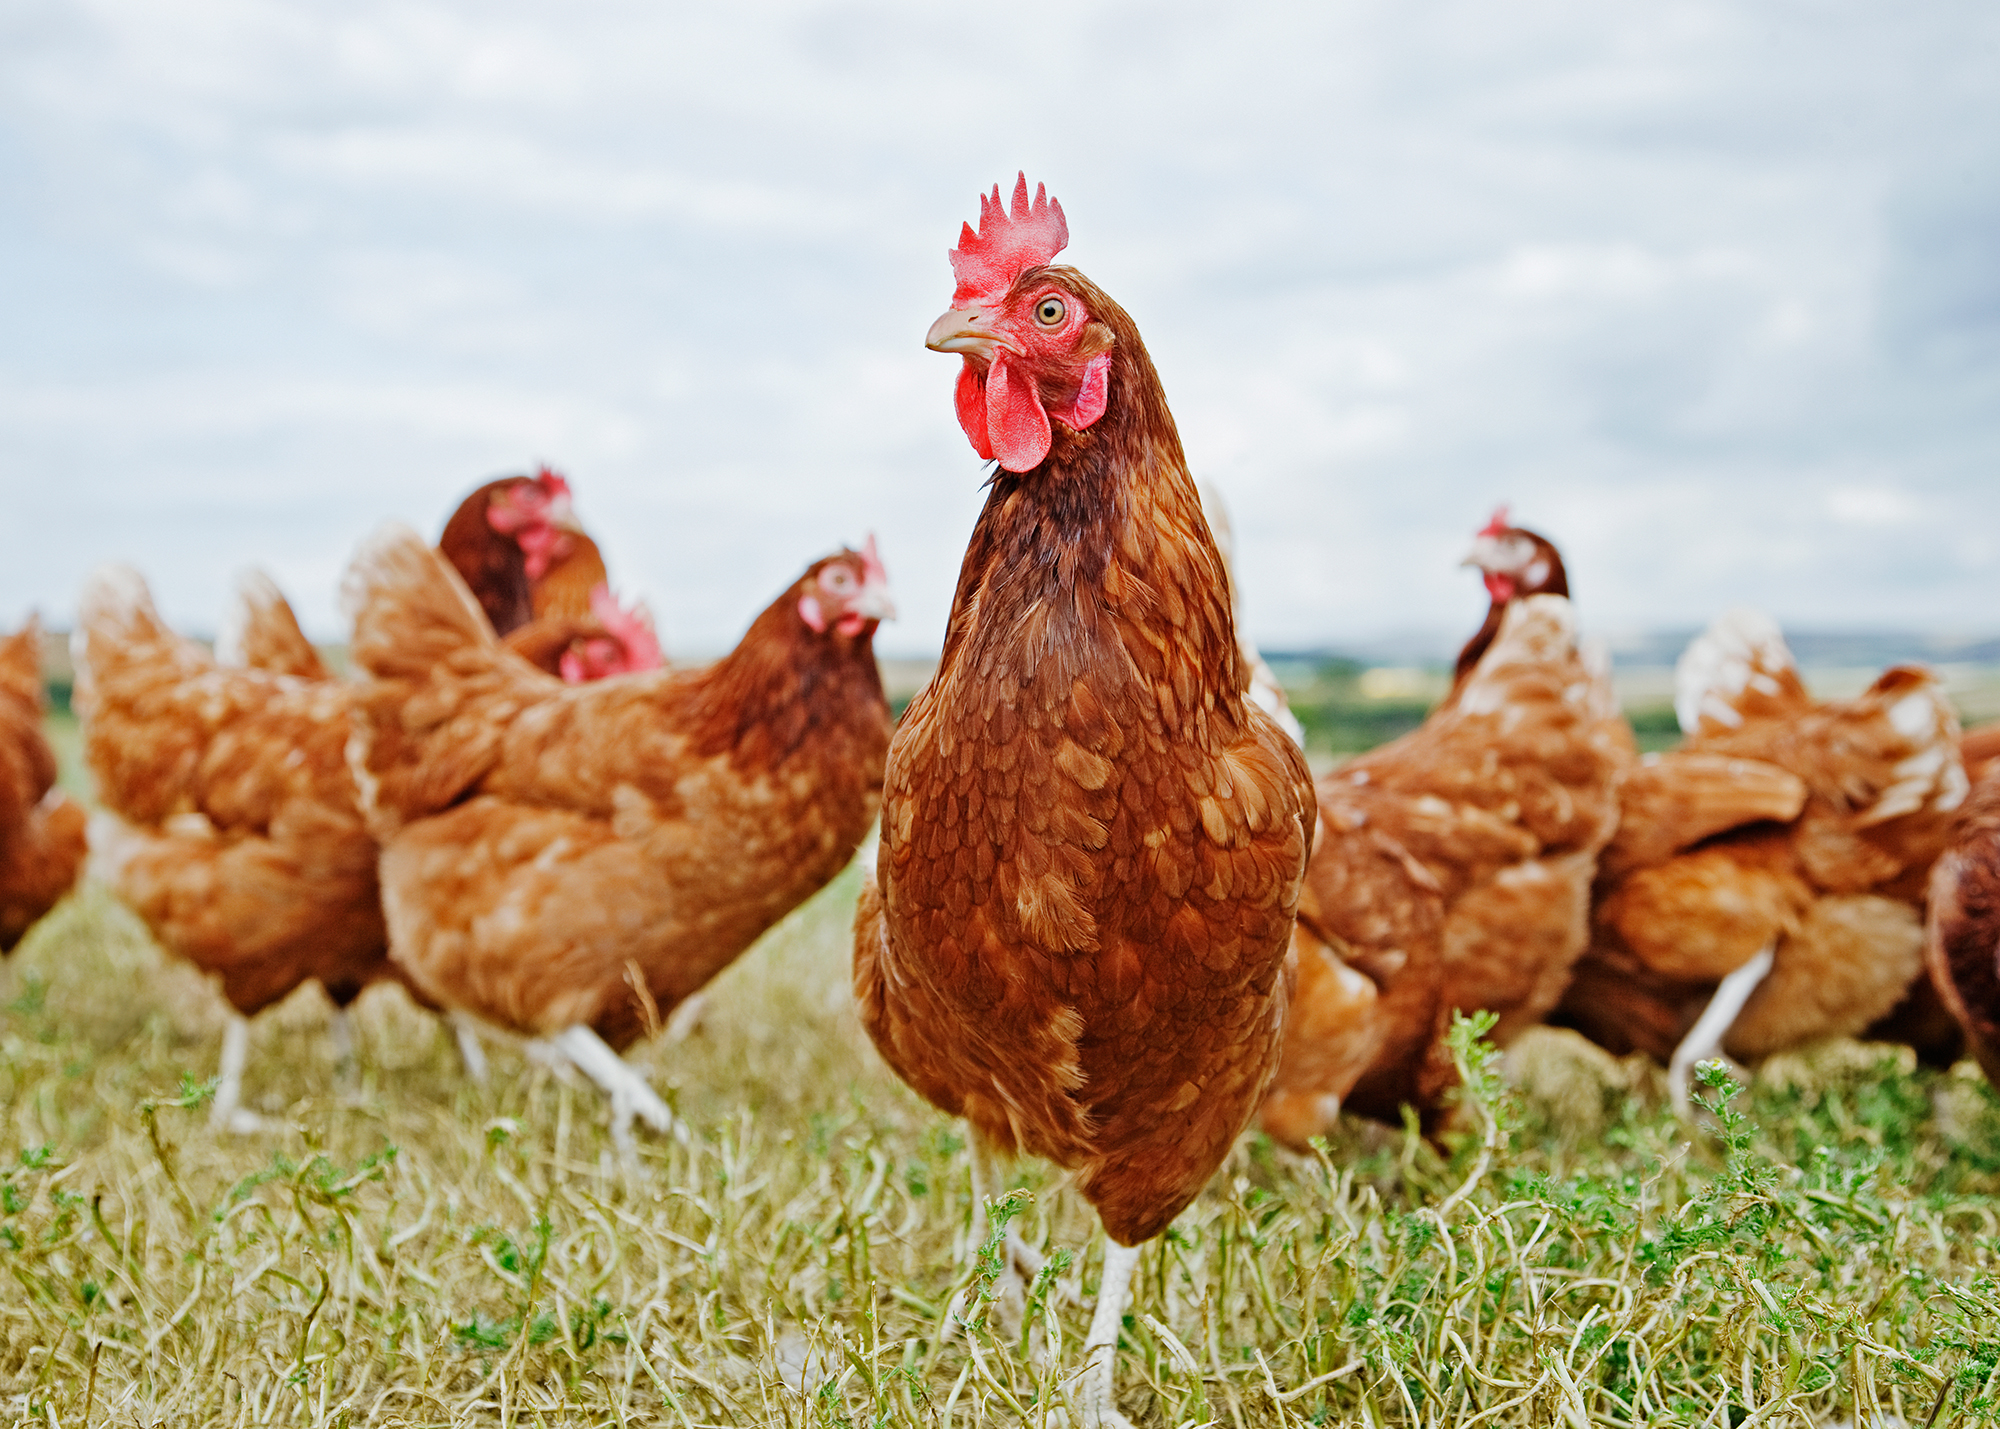 The British Hen Welfare Trust had its plans for a new re-homing and education centre approved on Friday